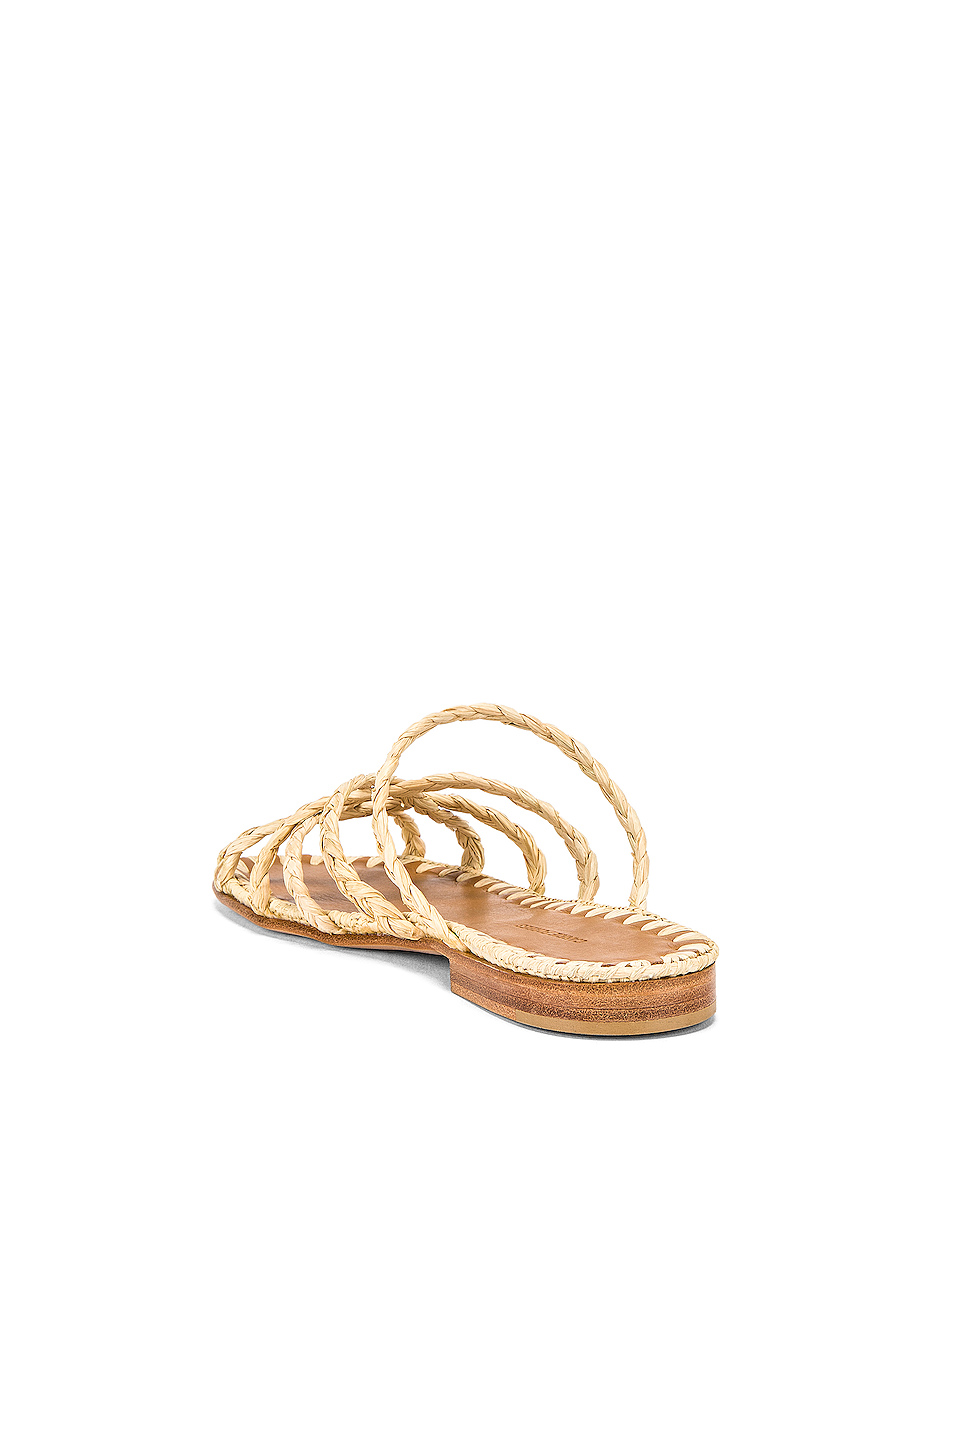 Buy Original Carrie Forbes Noura Sandal At Indonesia